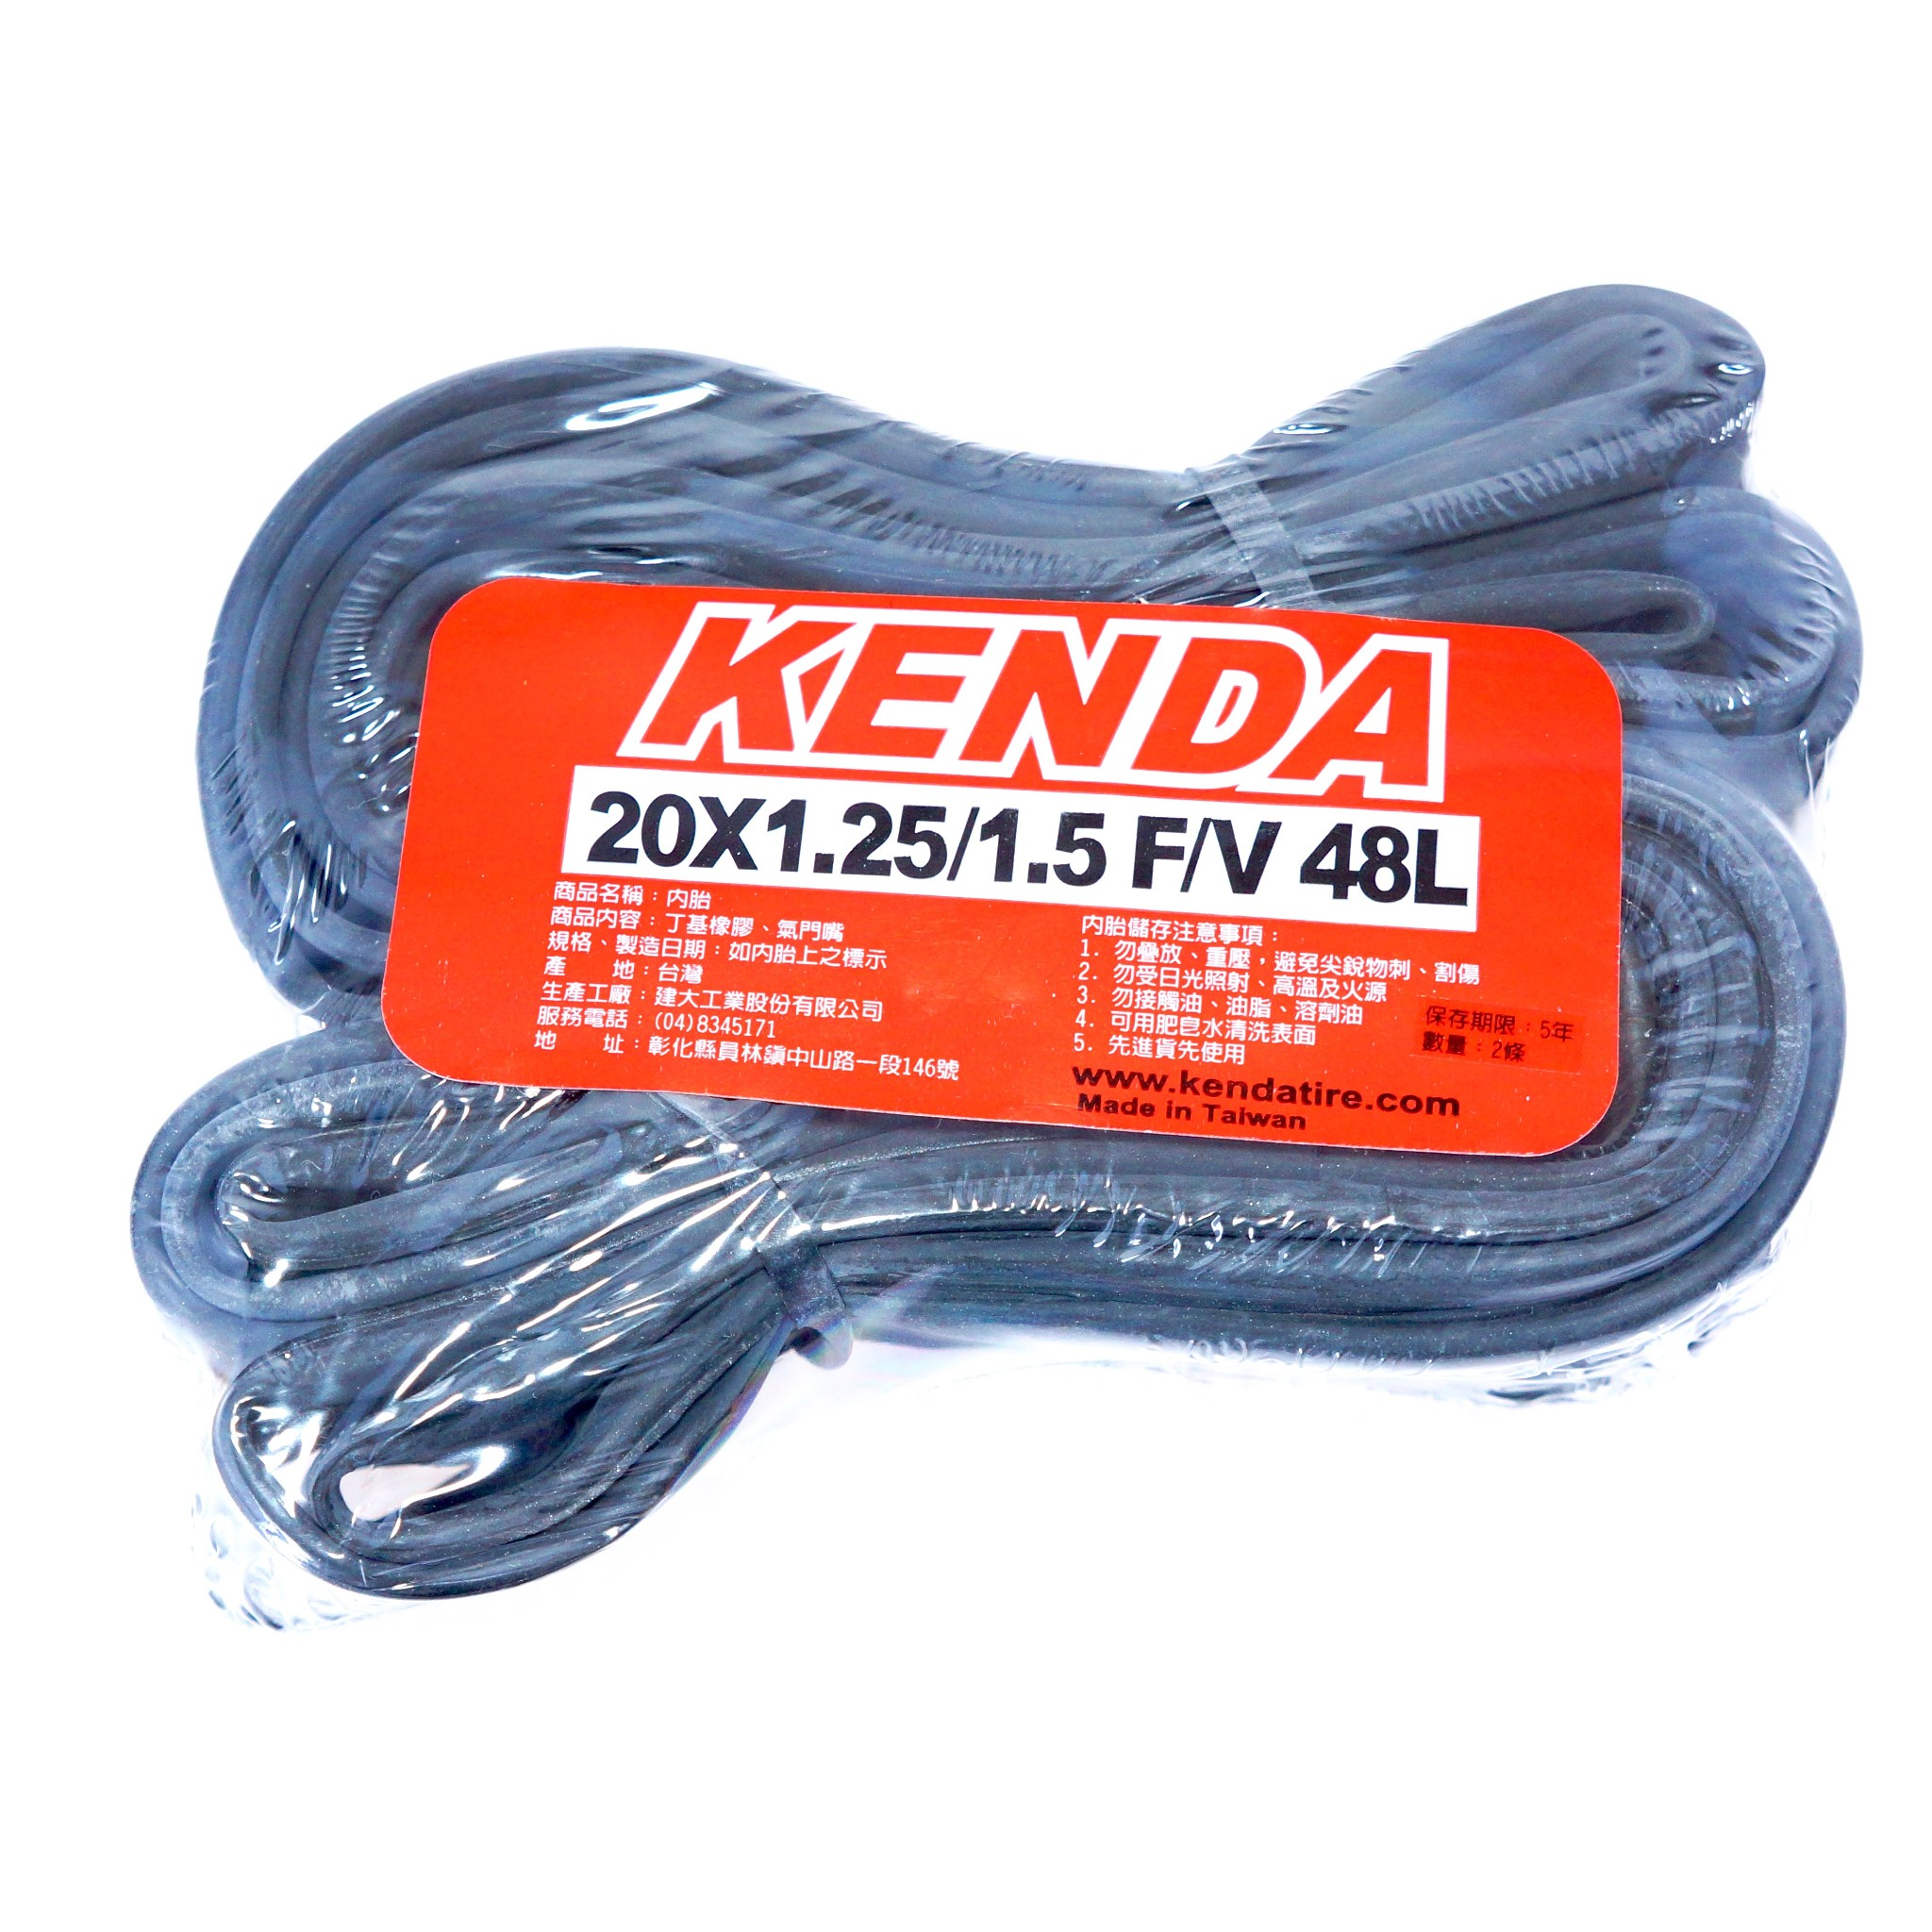 2 x Tube KENDA 20x1.25//1.5 48mm L A//V Schrader//America Folding Bike Inner Tube